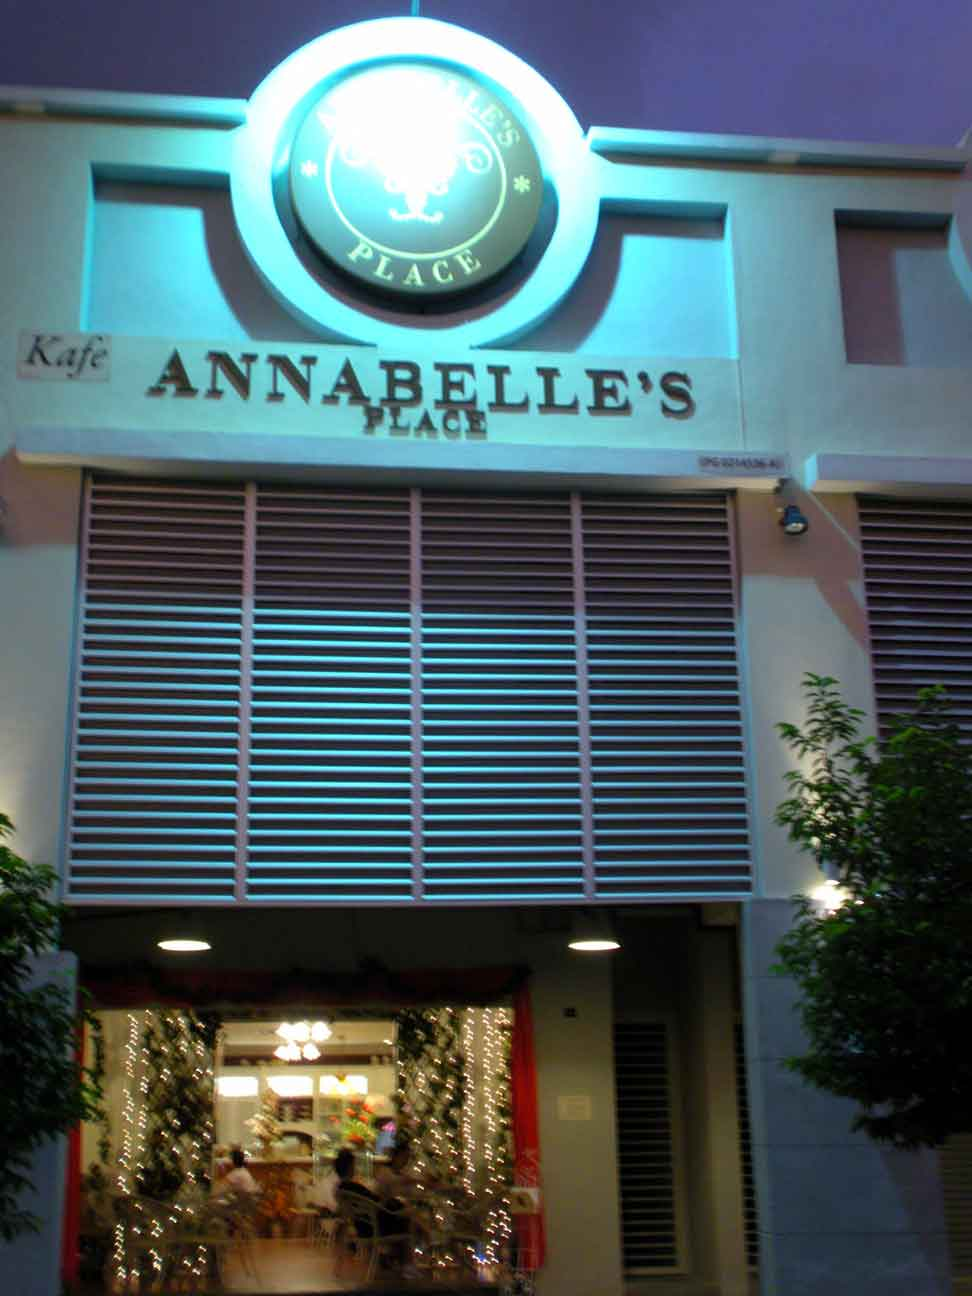 Annabelle's Place